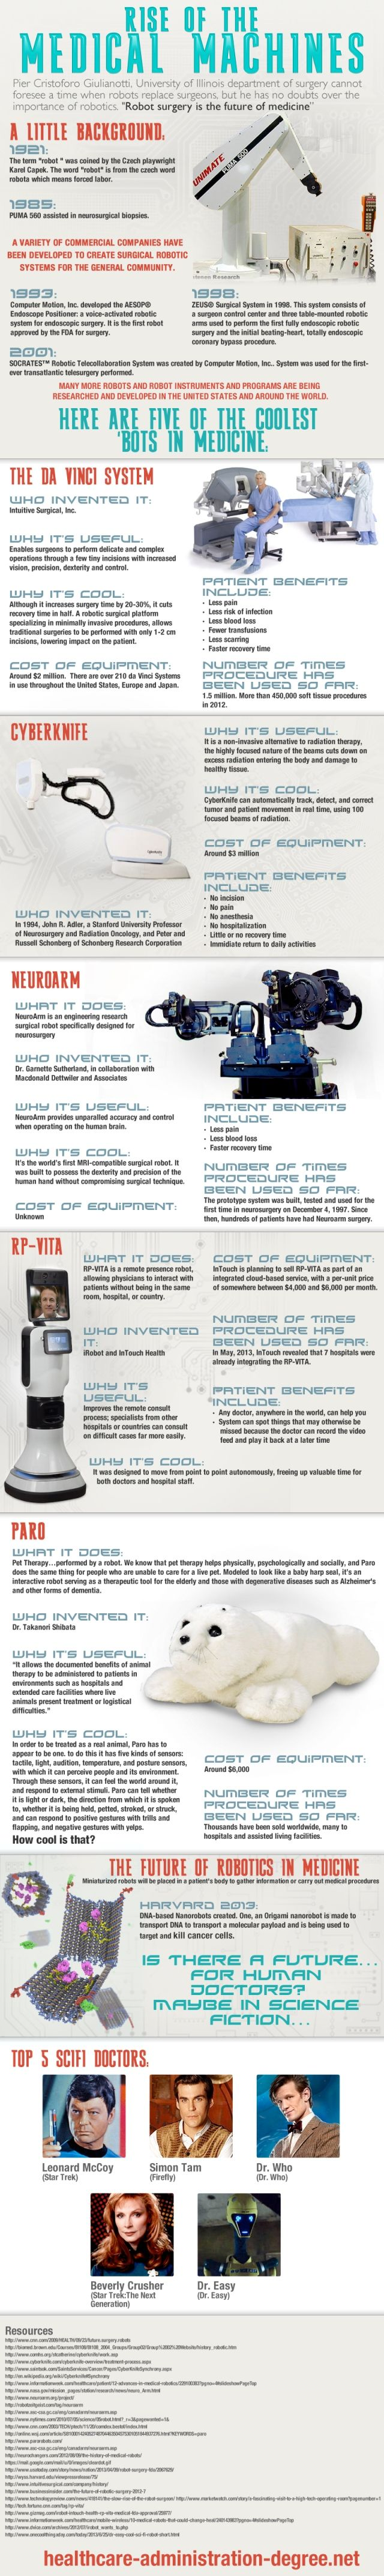 Medical Robot Infographic- This infopgraphic provides background information about robotics used in the medicine world. Learning about the technologies used for good in the health industry can help students learn the benefits from these technologies. -Isabel